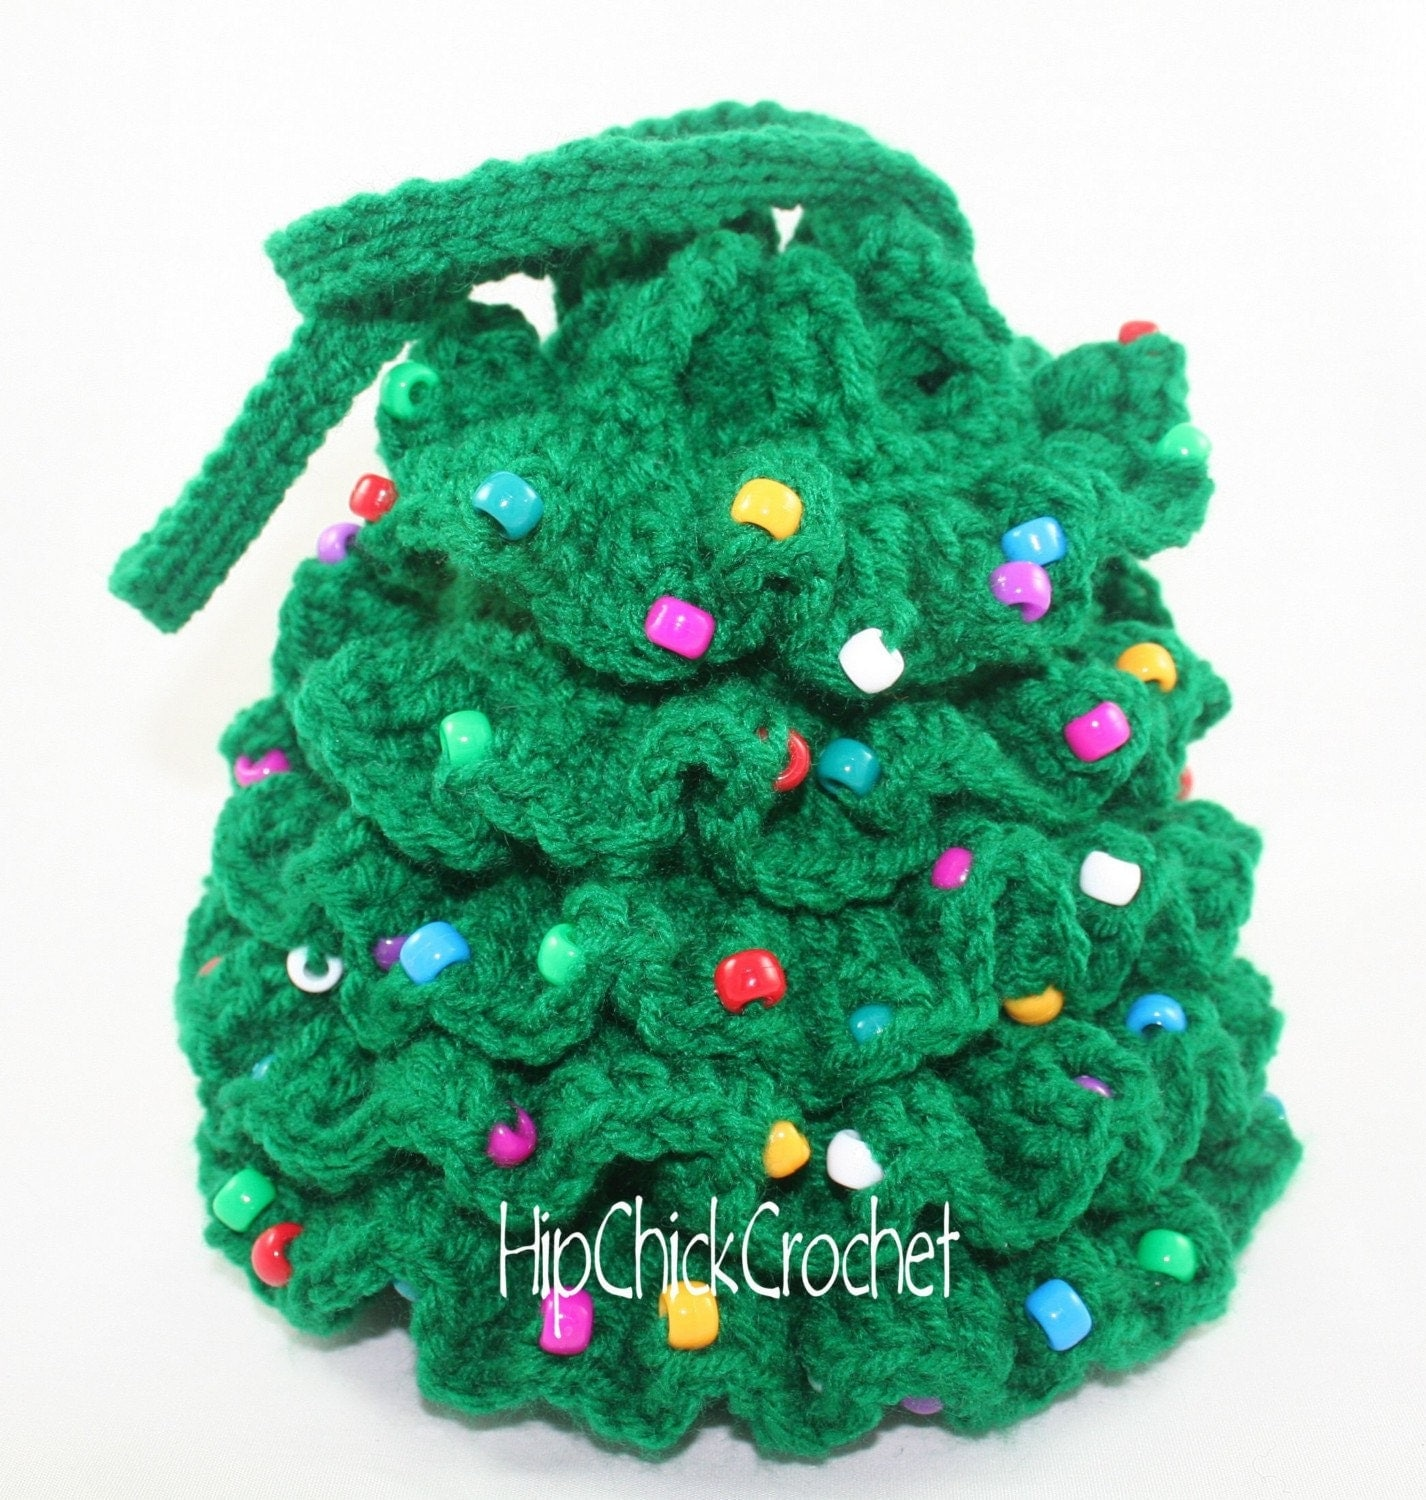 Crochet Patterns Xmas : CHRISTMAS TREE COASTER Crochet Pattern - Free Crochet Pattern